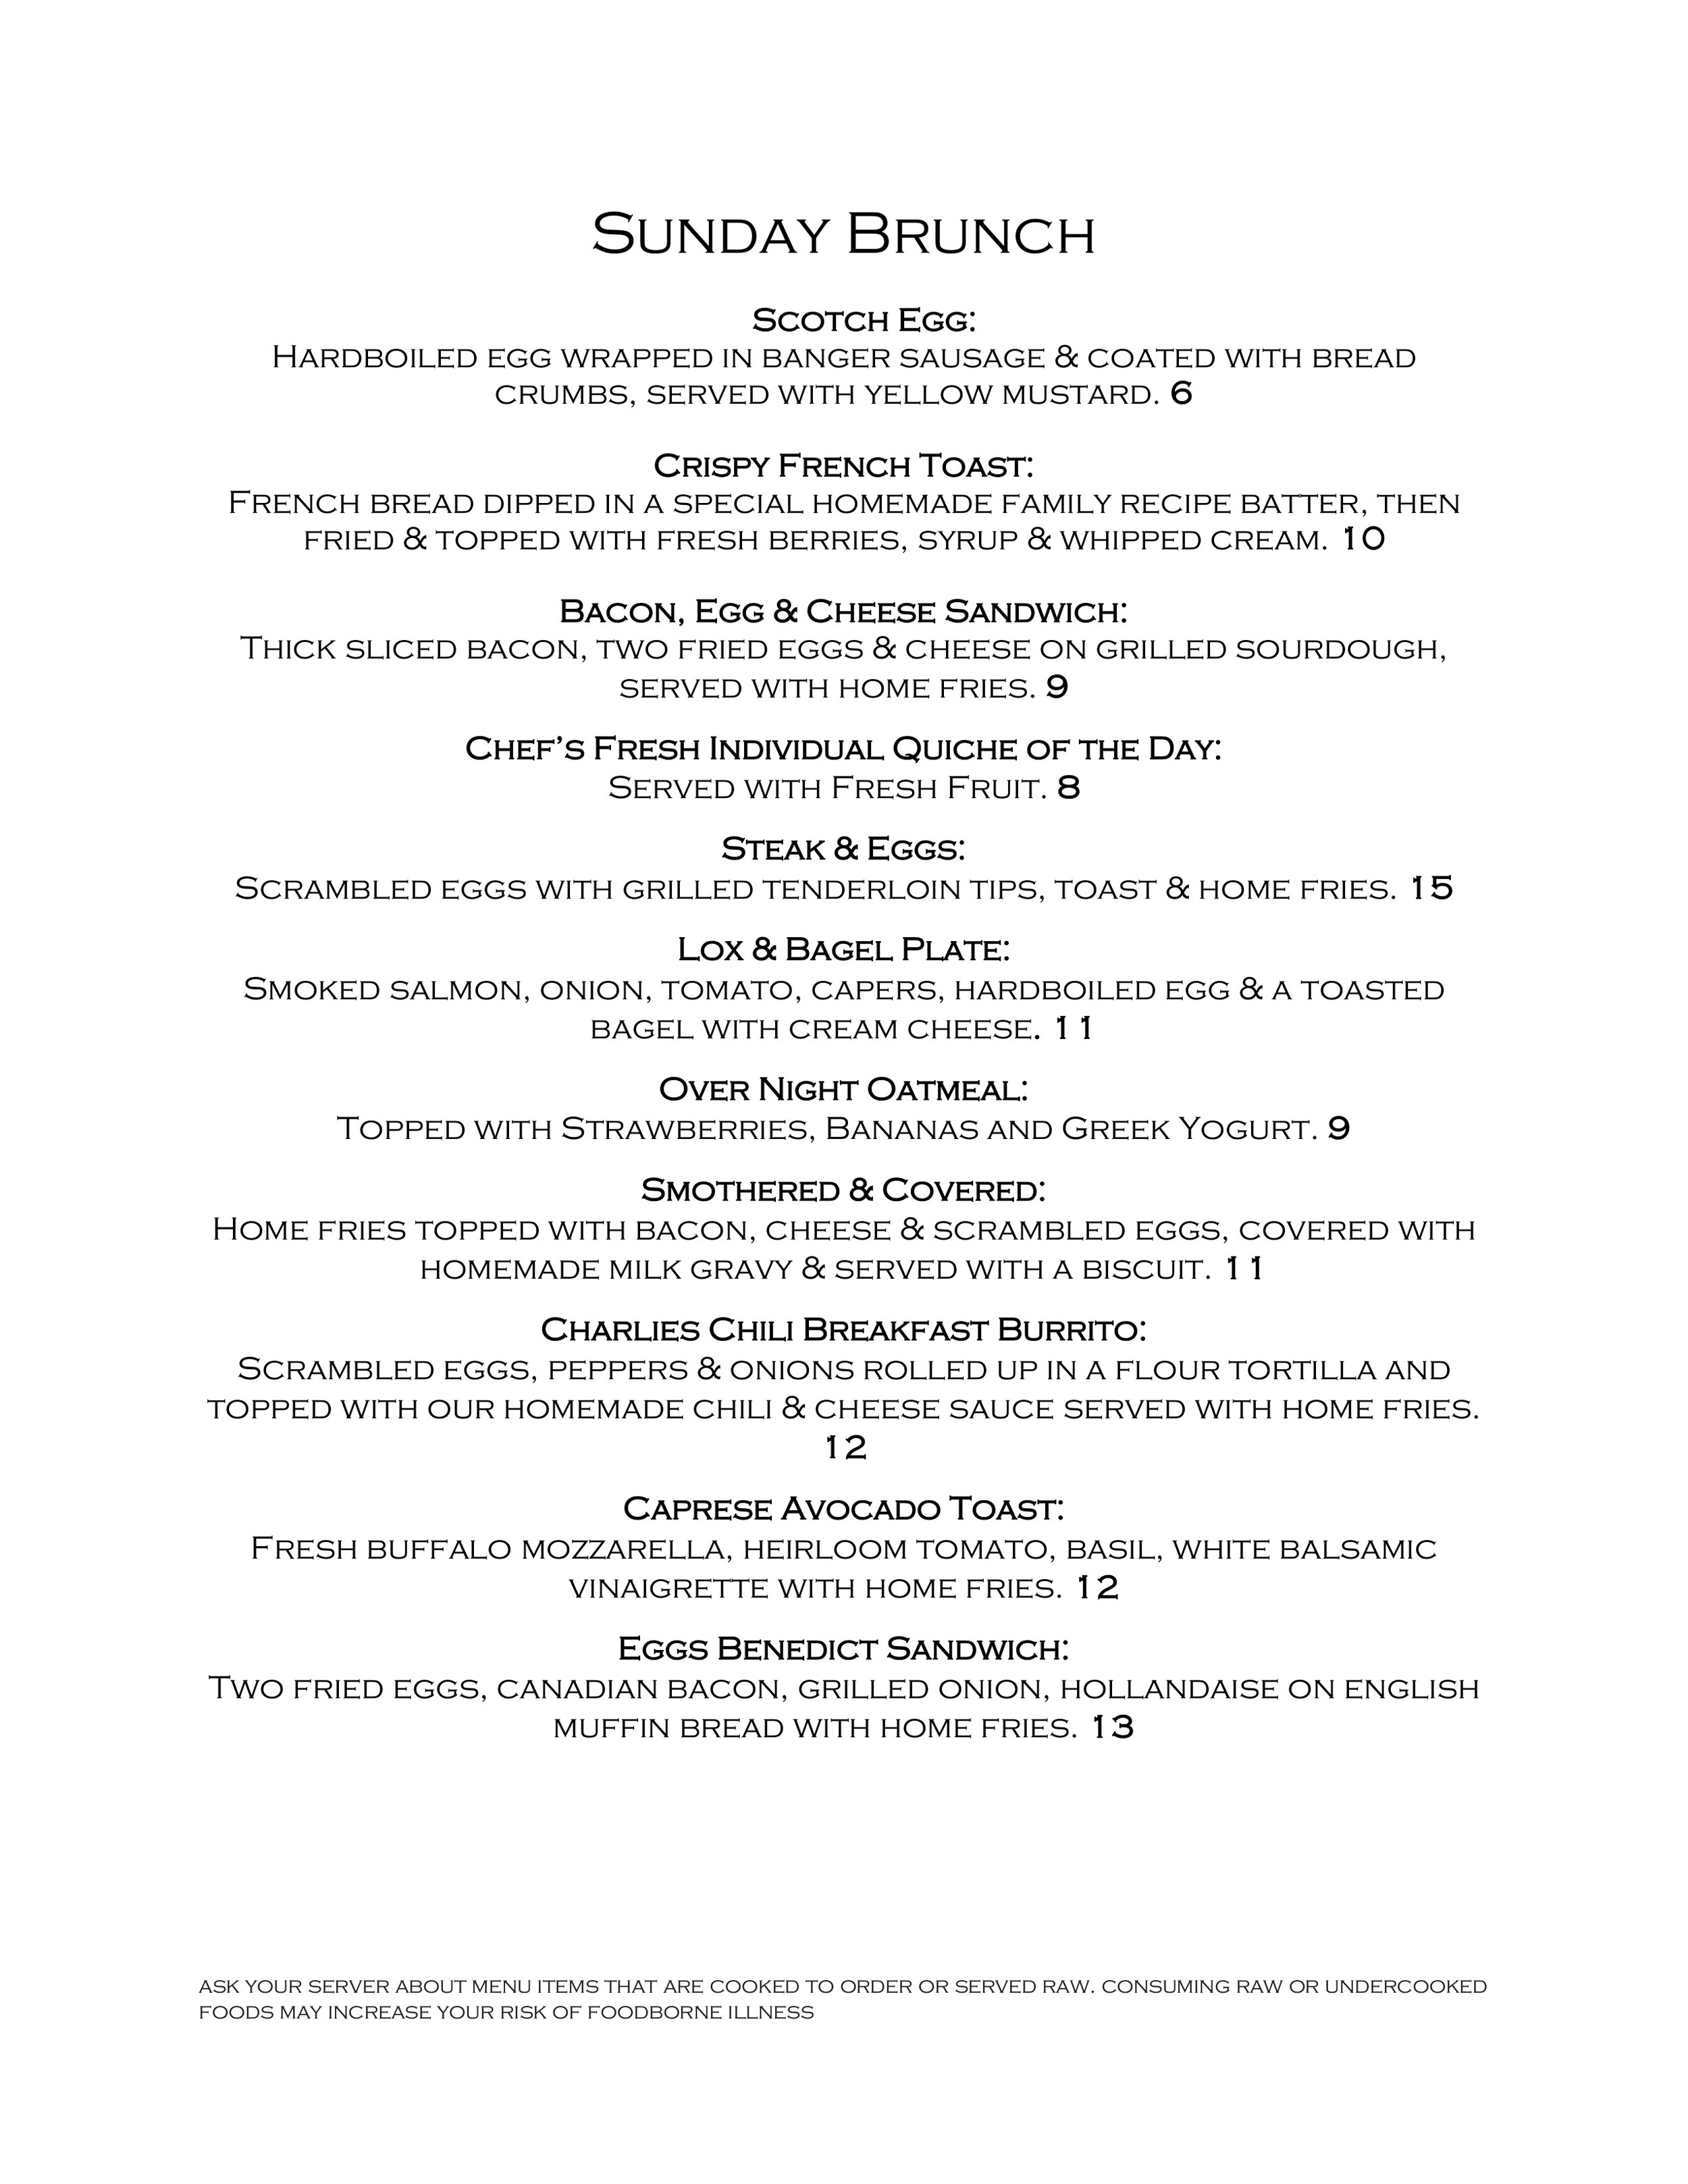 2FOG's Pub Sunday Brunch Menu - Page 1